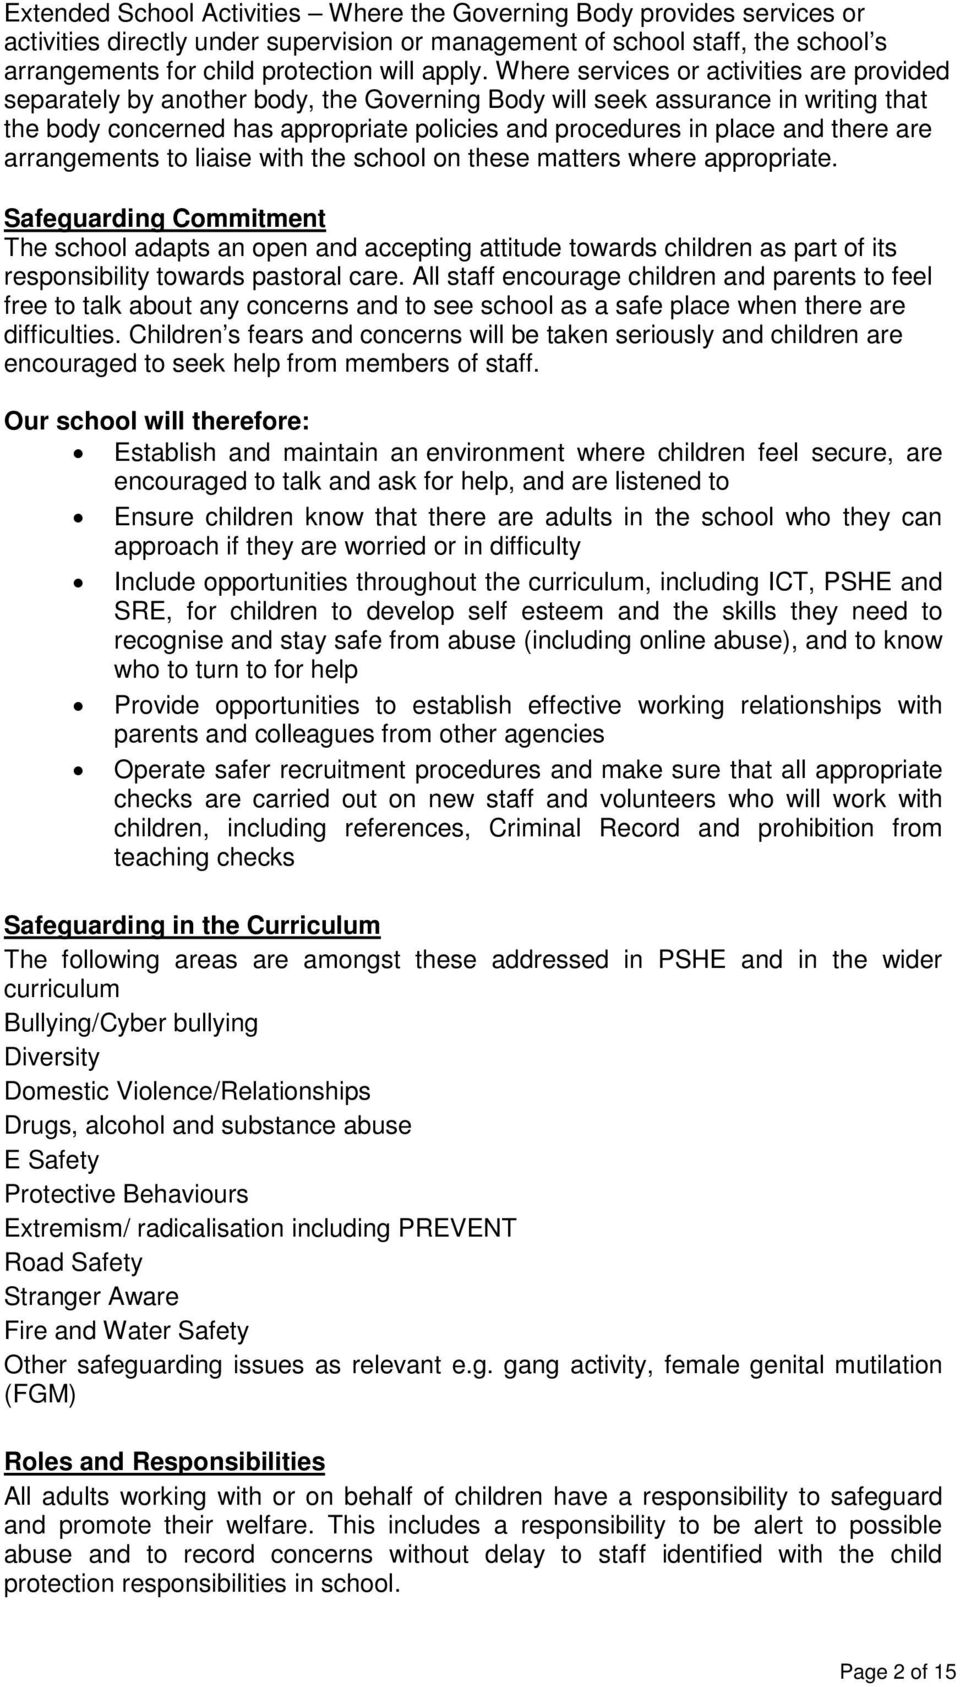 there are arrangements to liaise with the school on these matters where appropriate.